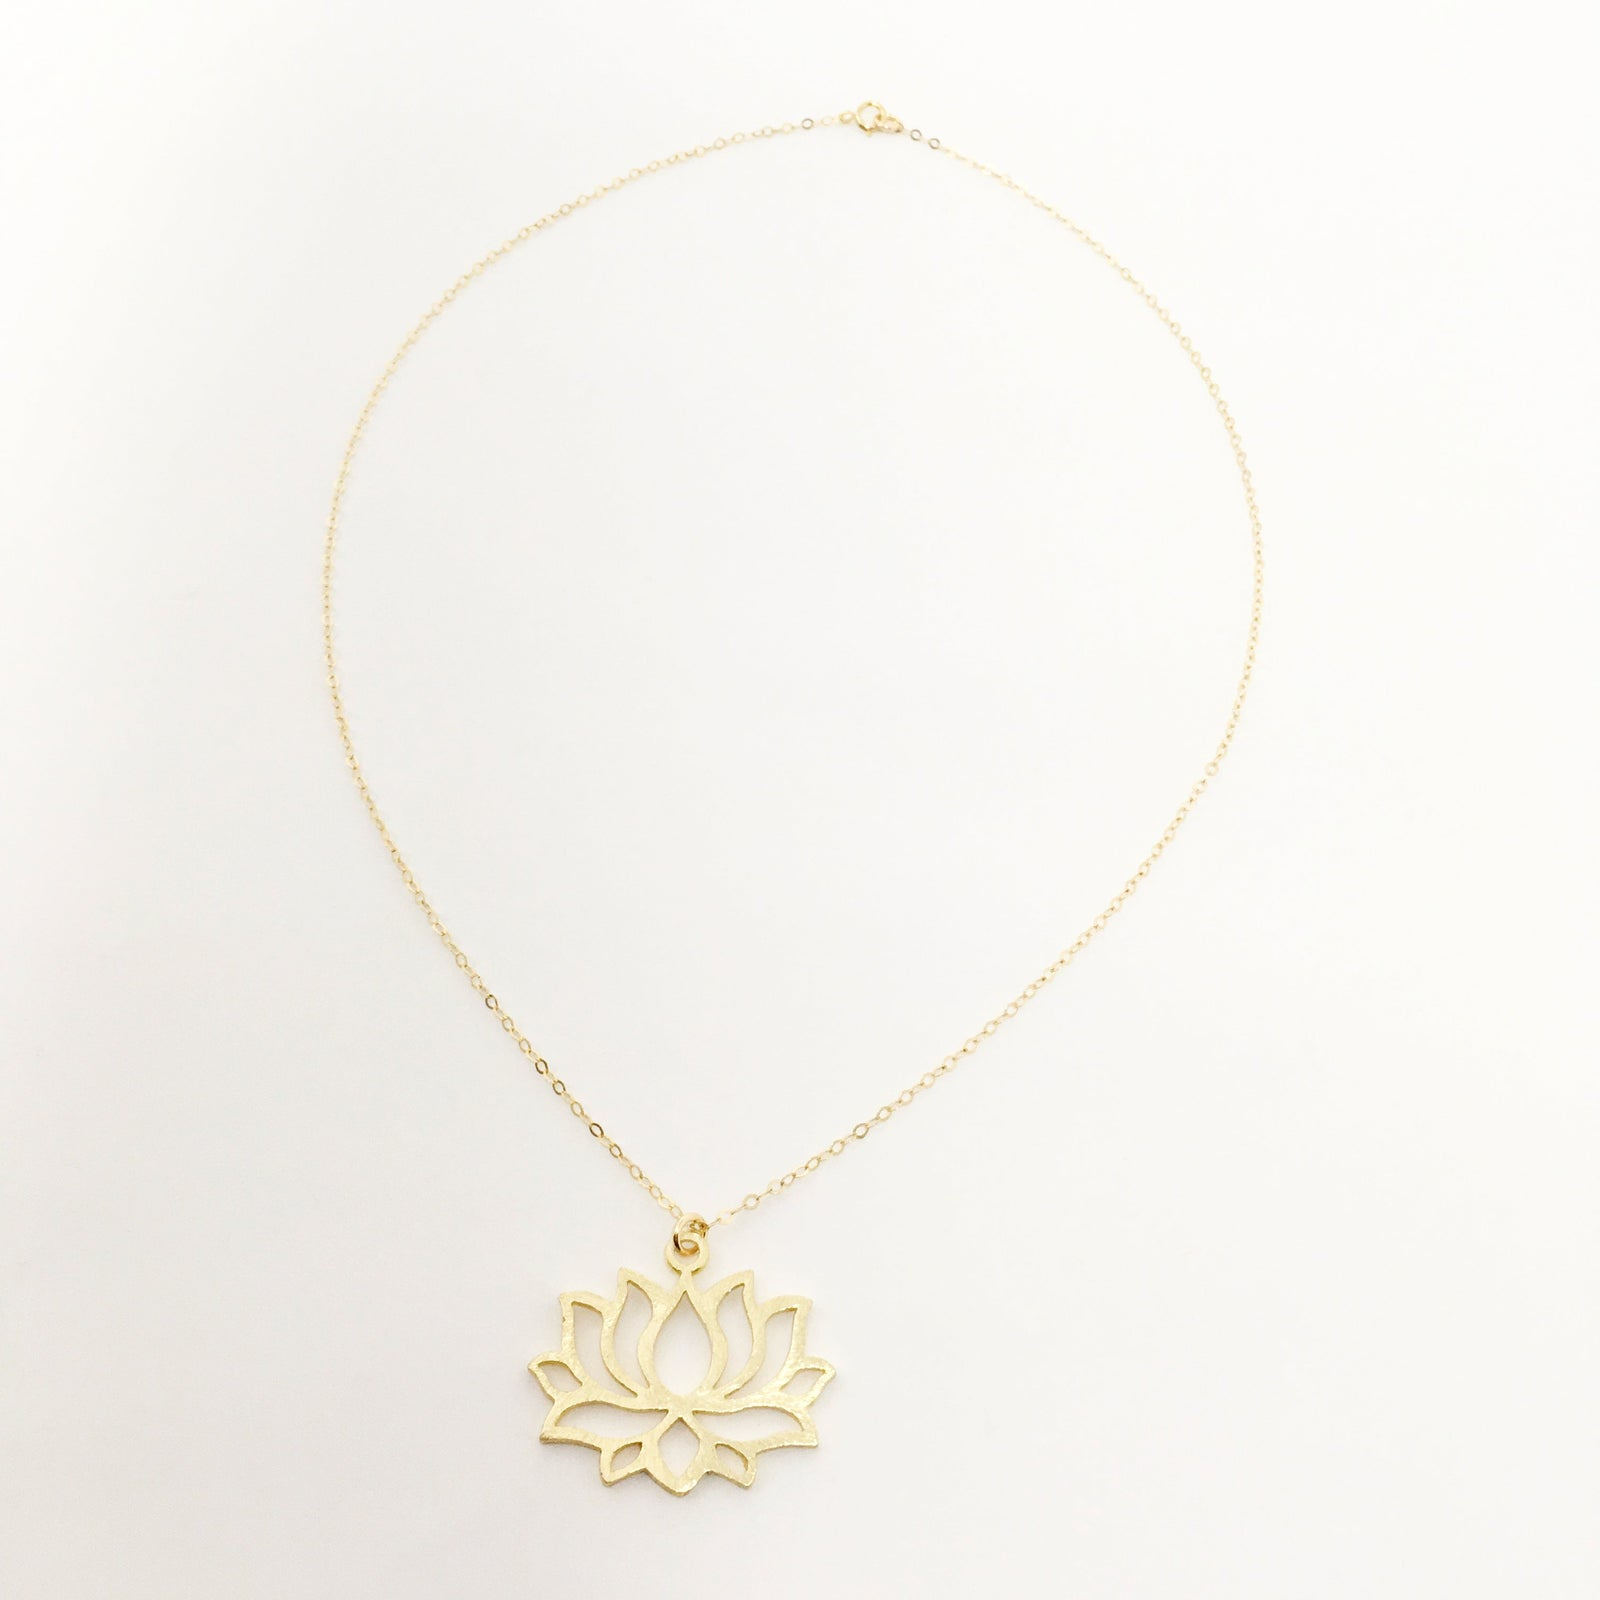 14K GOLD-FILLED BRUSHED LILY NECKLACE